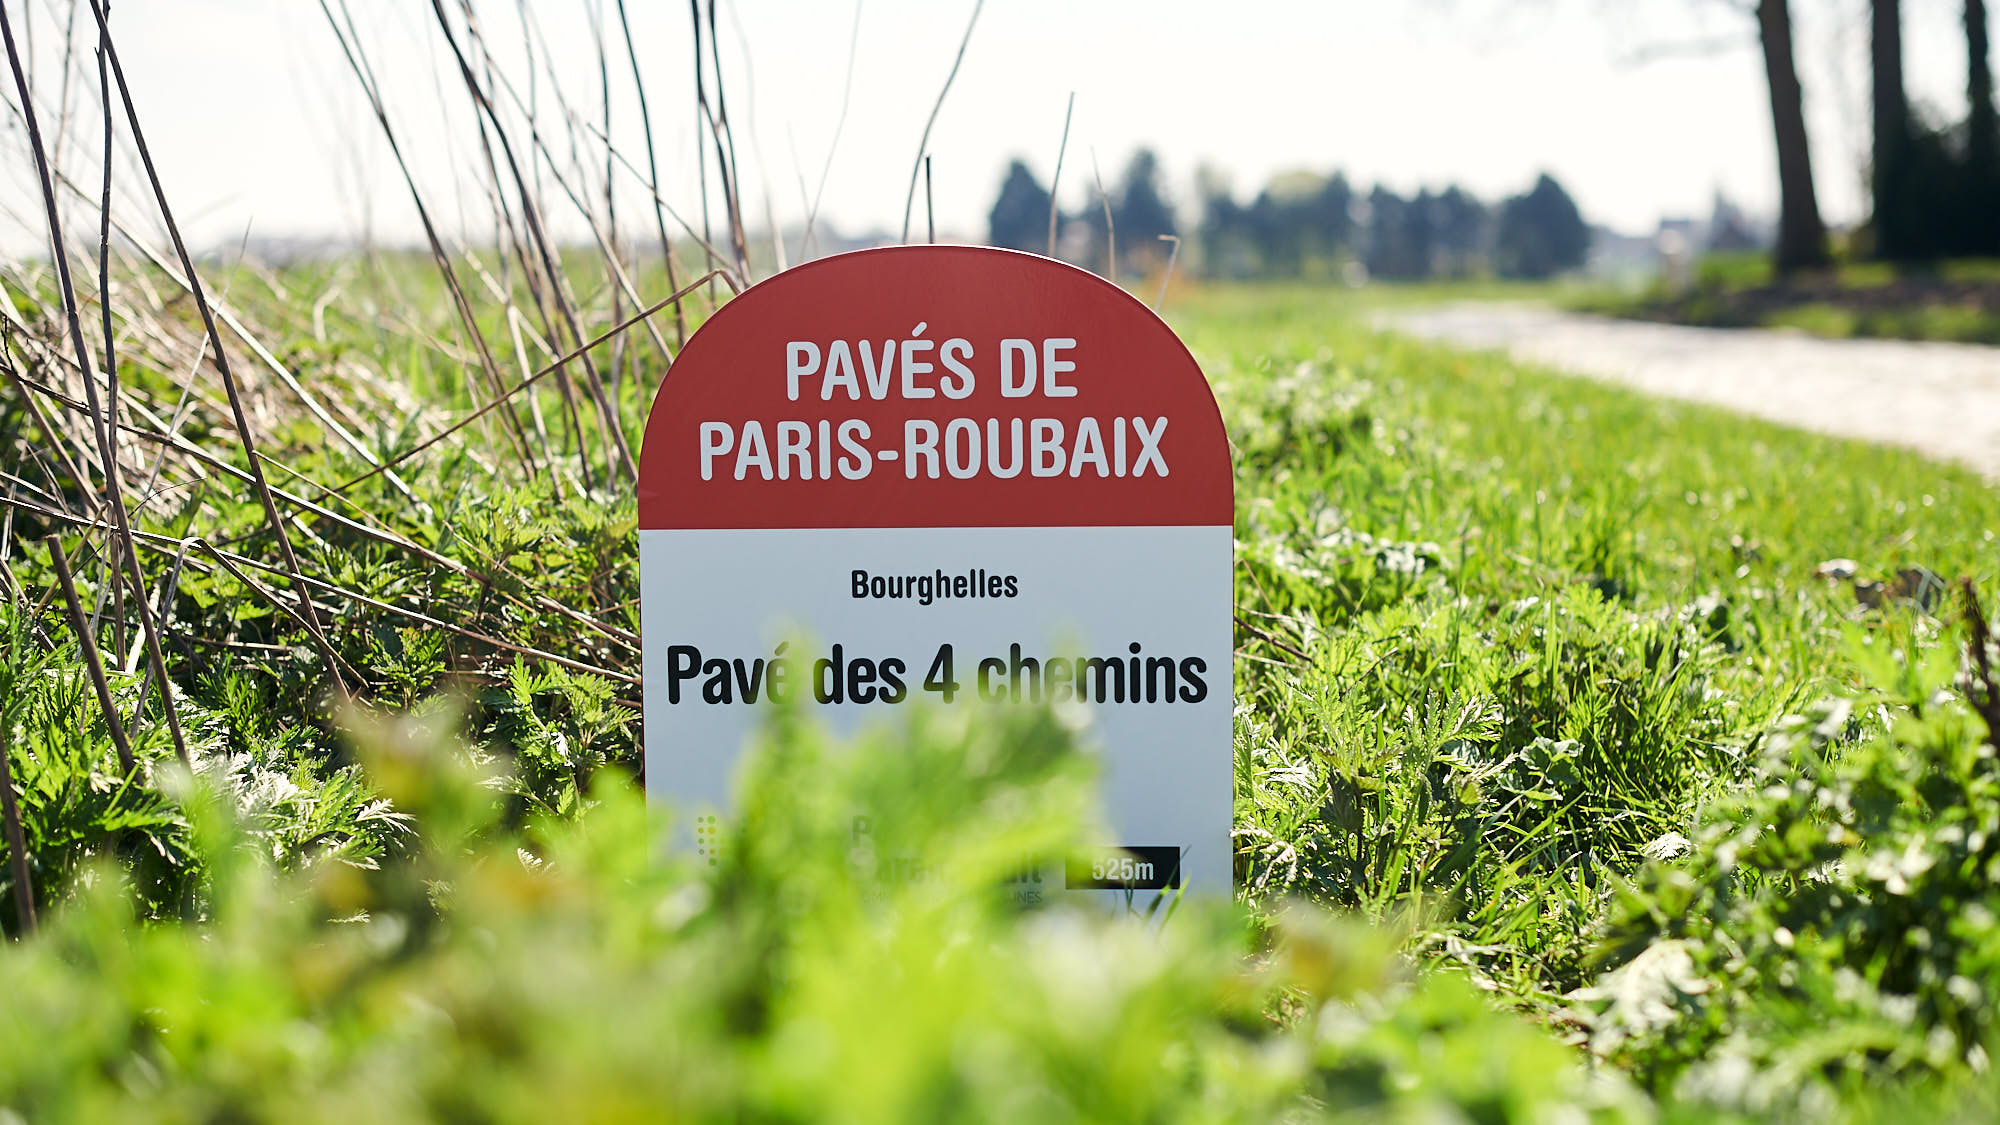 Paris-Roubaix cobbles section sign